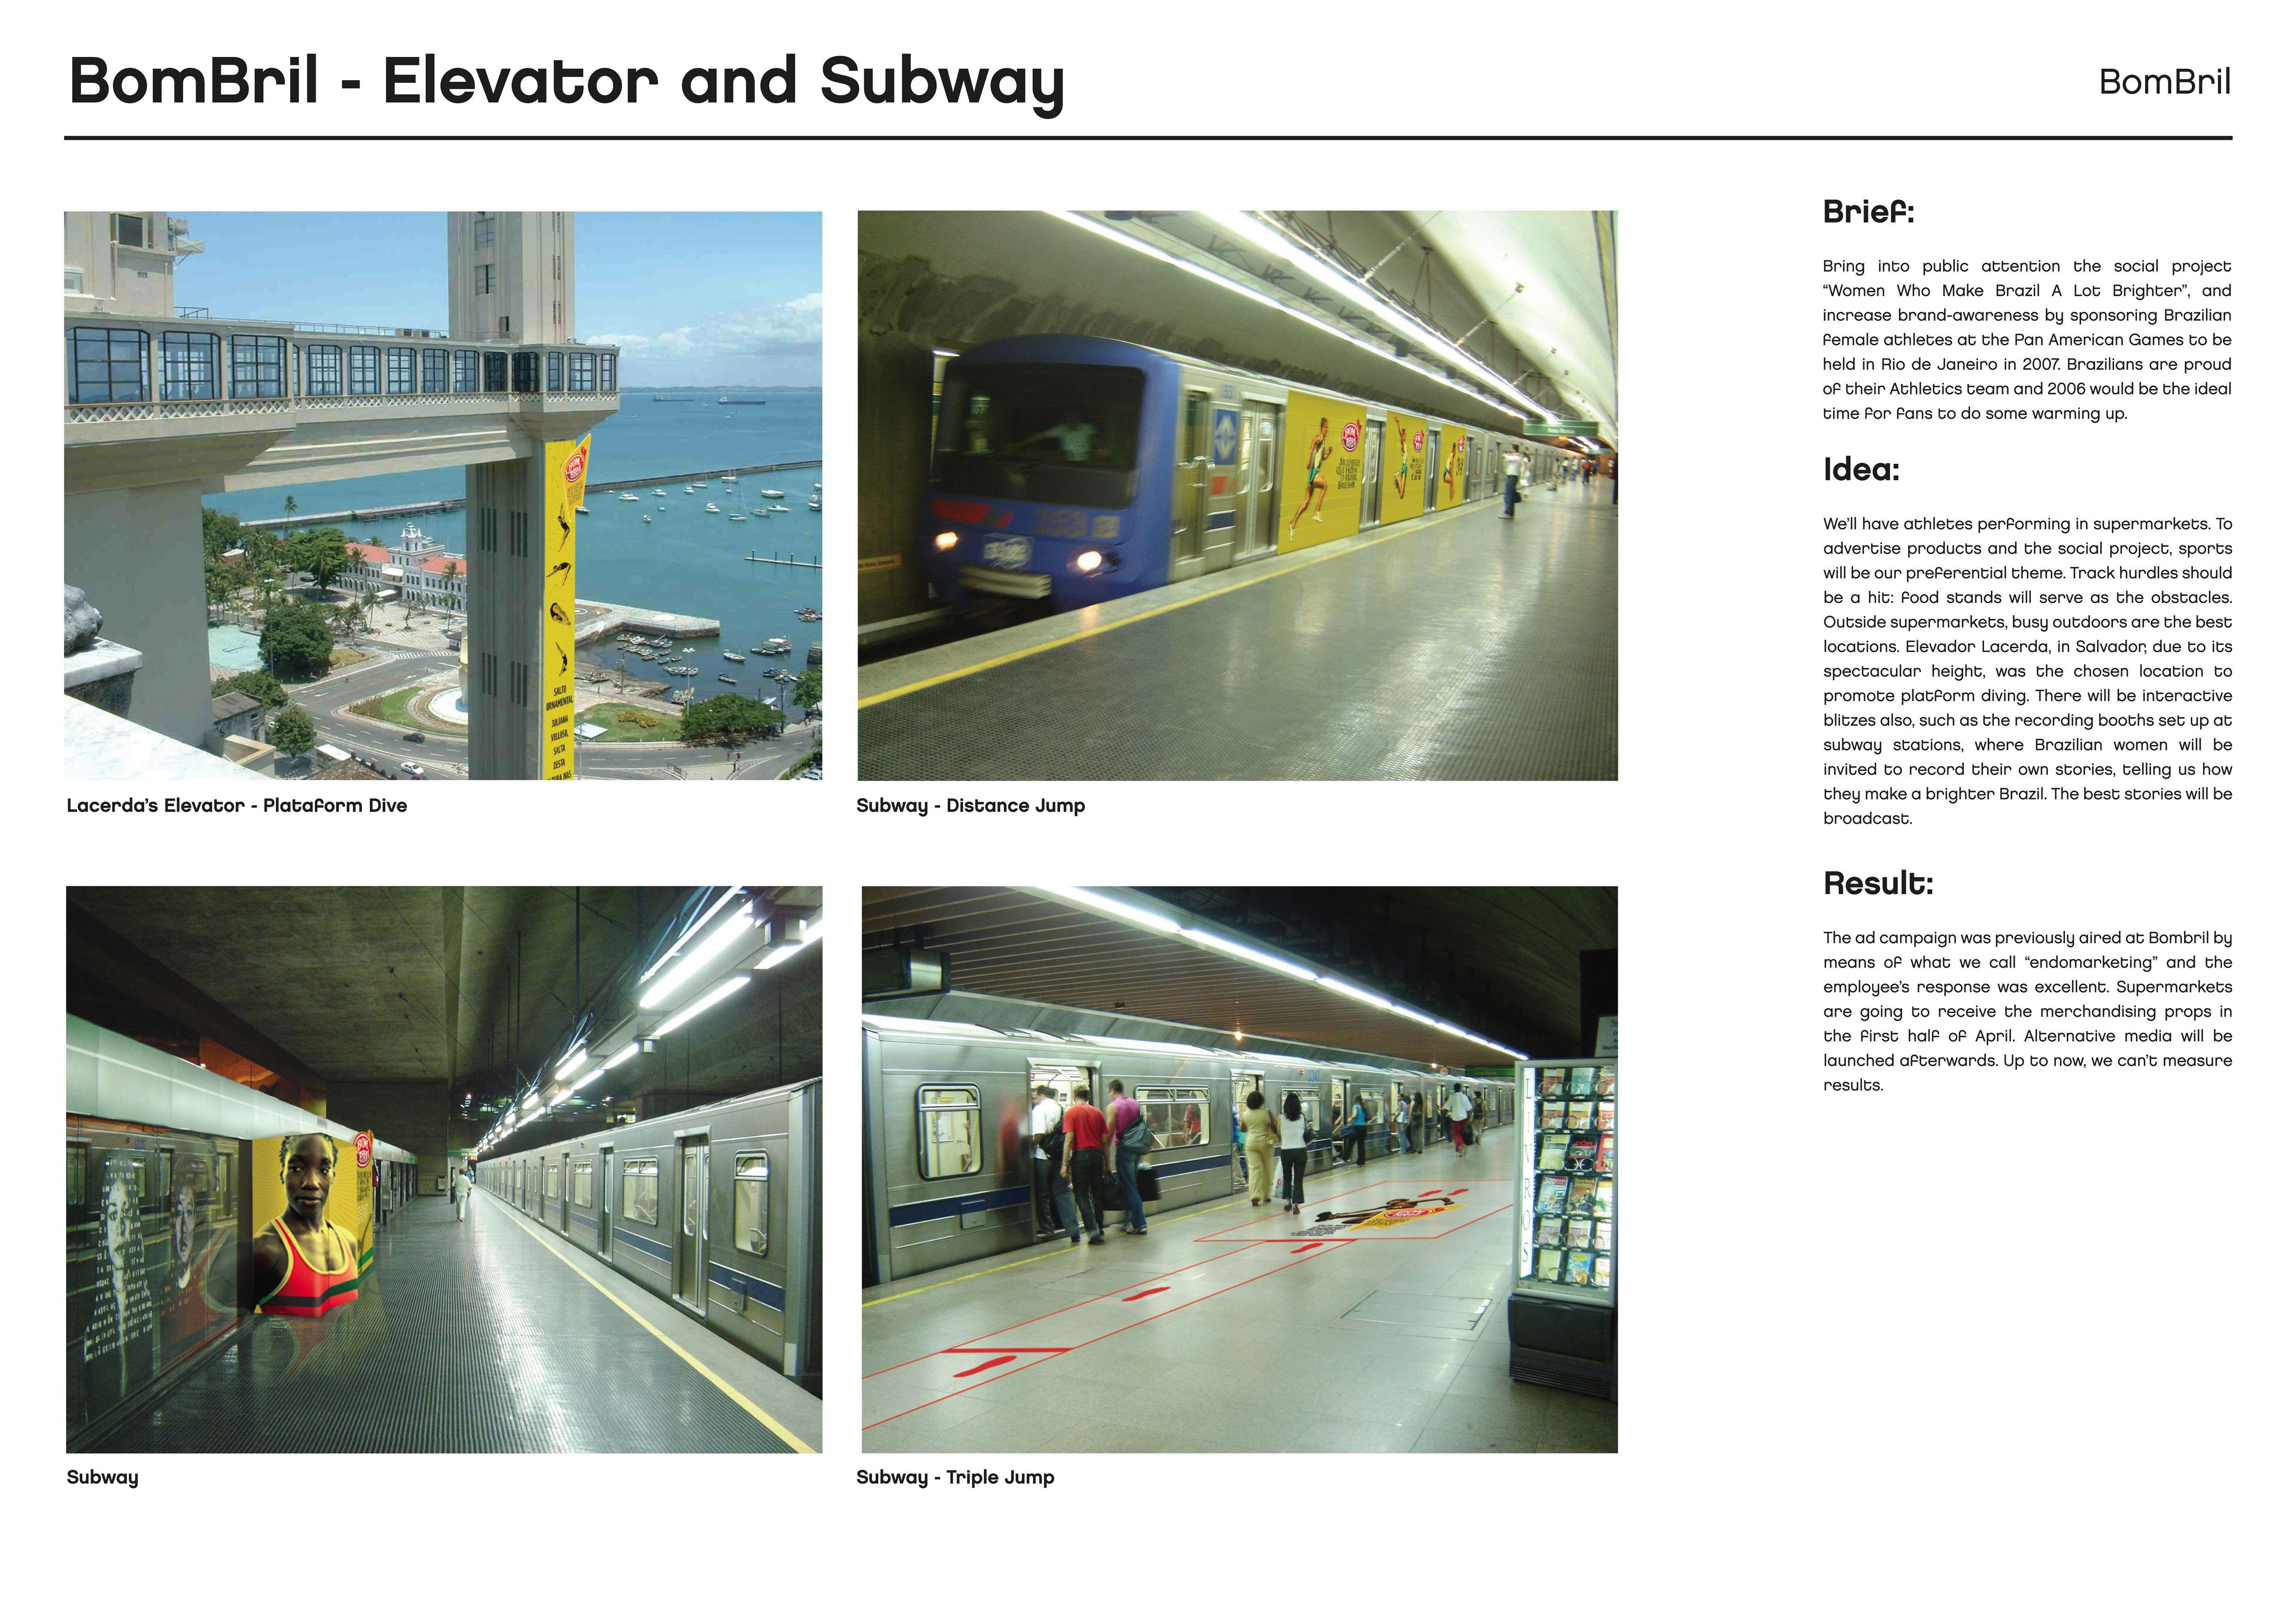 subway marketing and busy ants segment Subway restaurant market segmentation the influence of target market for the services which the subway offers to its market subway: marketing and busy ants segment.